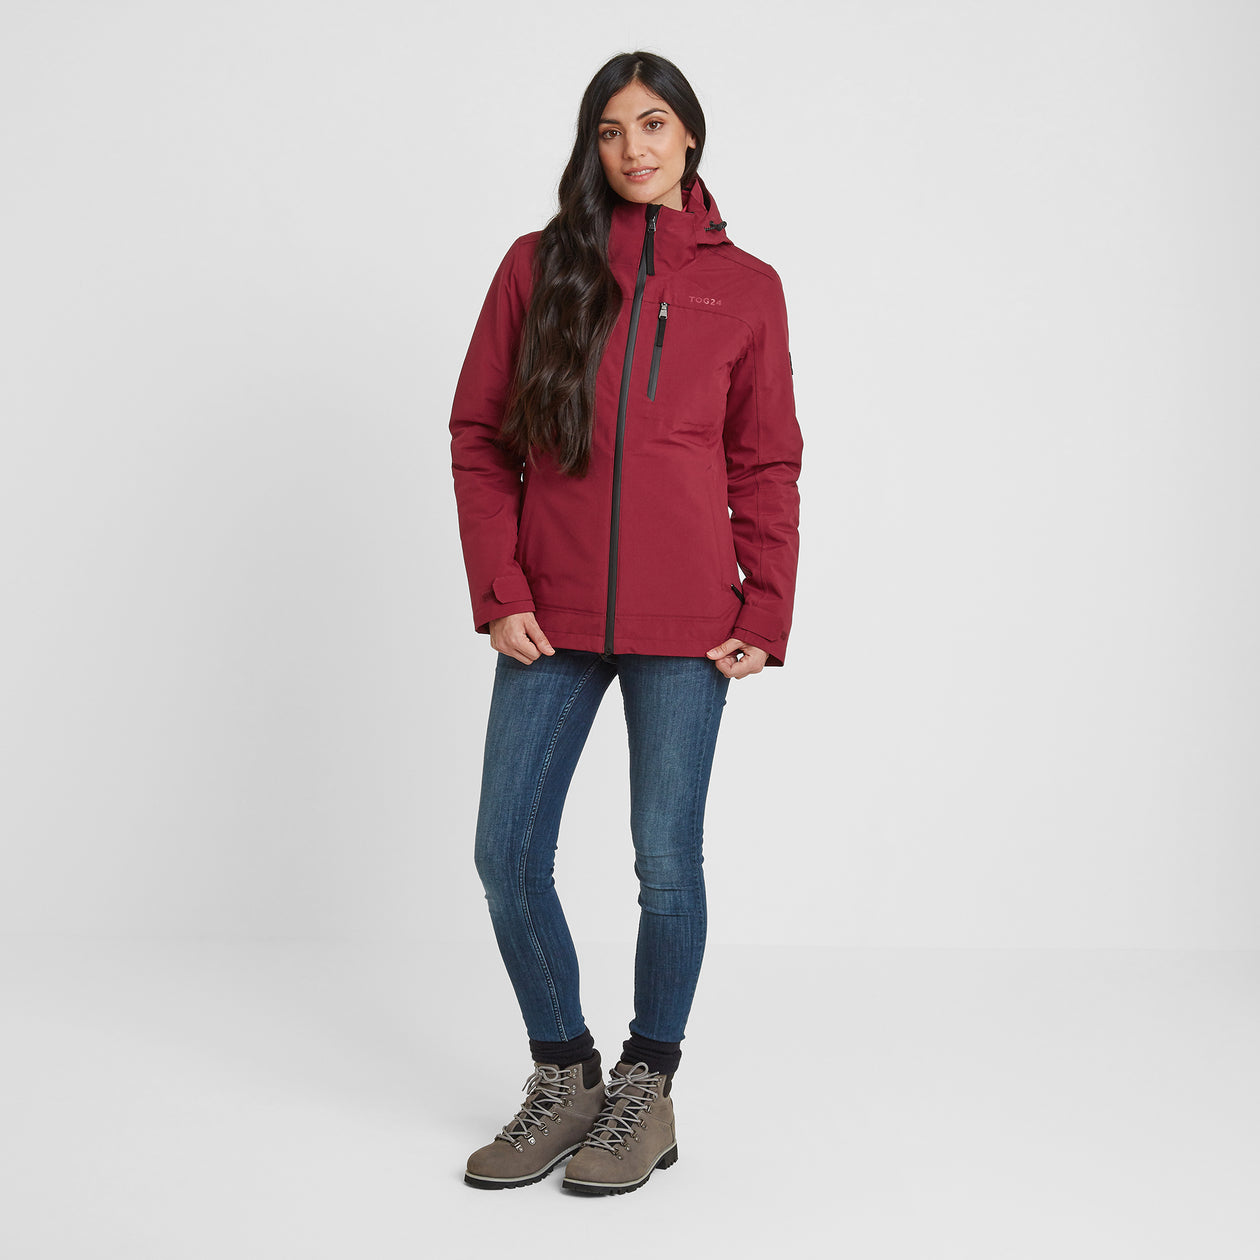 Beverley Womens Waterproof 3-in-1 Jacket - Raspberry image 4